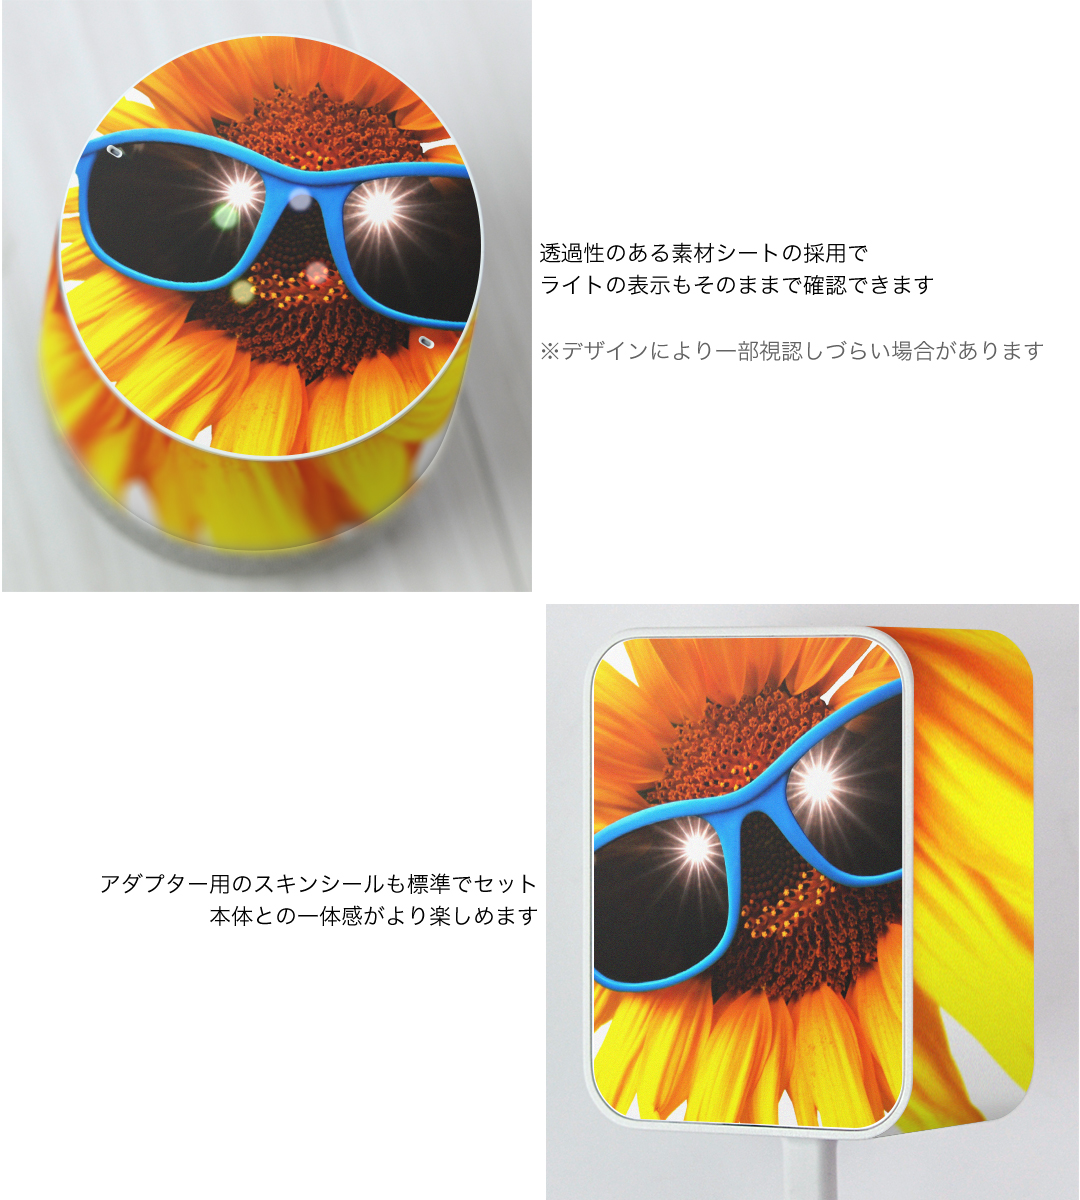 21b90399495 Skin seal Google home slender speaker cover case film sticker accessories  protection 000940 unique sunflower sunglasses for exclusive use of Google  Home